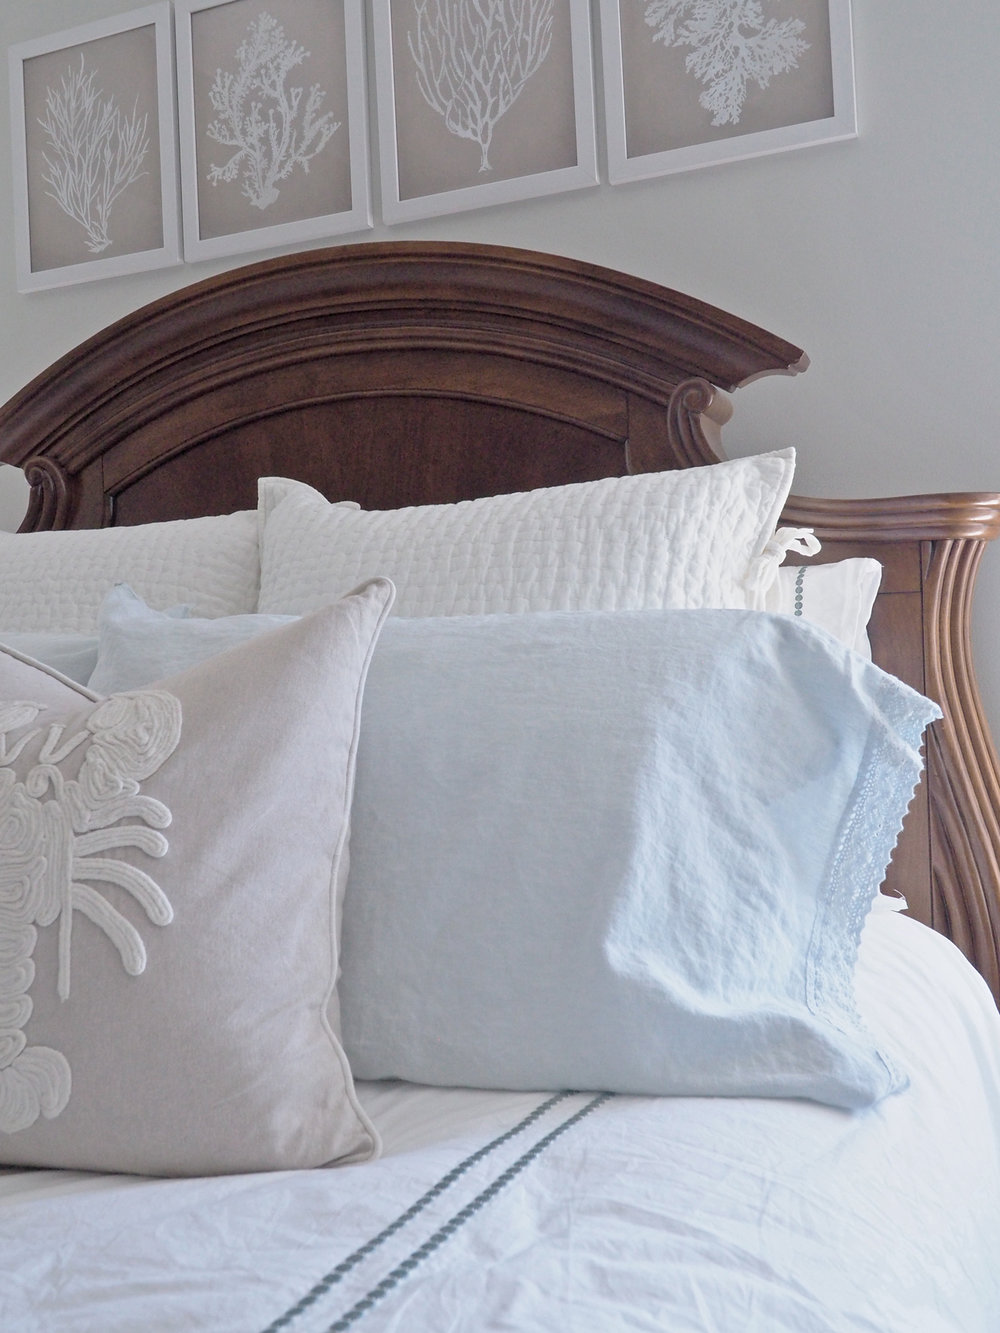 Those crocheted edges on the pillow cases had me at hello!